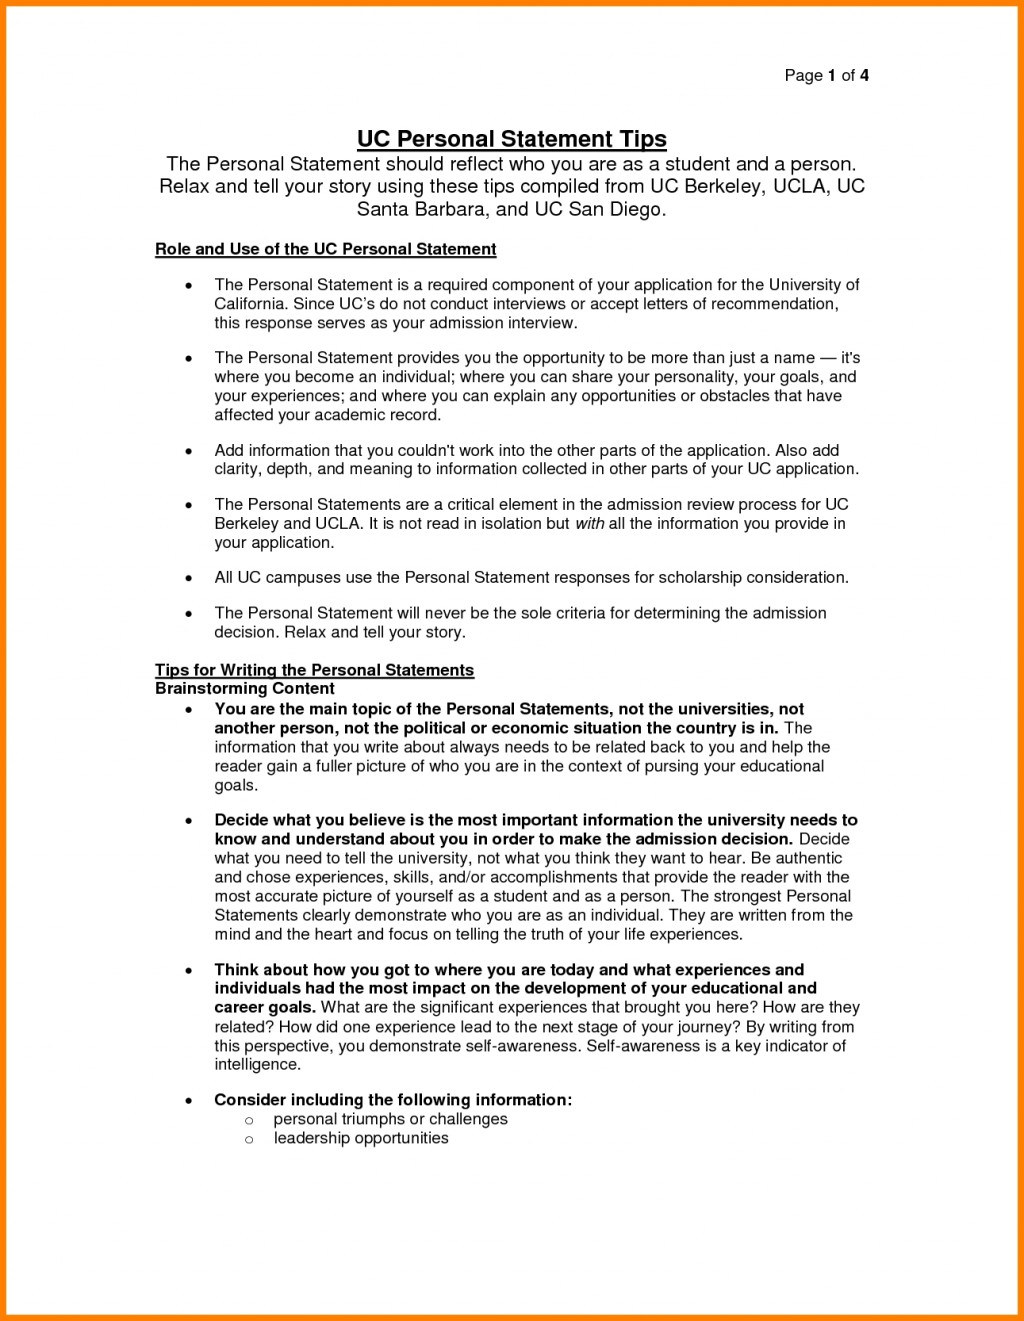 001 Uc College Essay Promptss Writings And Essays Best Personal Statement Samples Berkeley Intende Coalition For Ucla List Stanford Texas Csu Harvard Shocking Prompts Prompt #1 Examples Guy Large